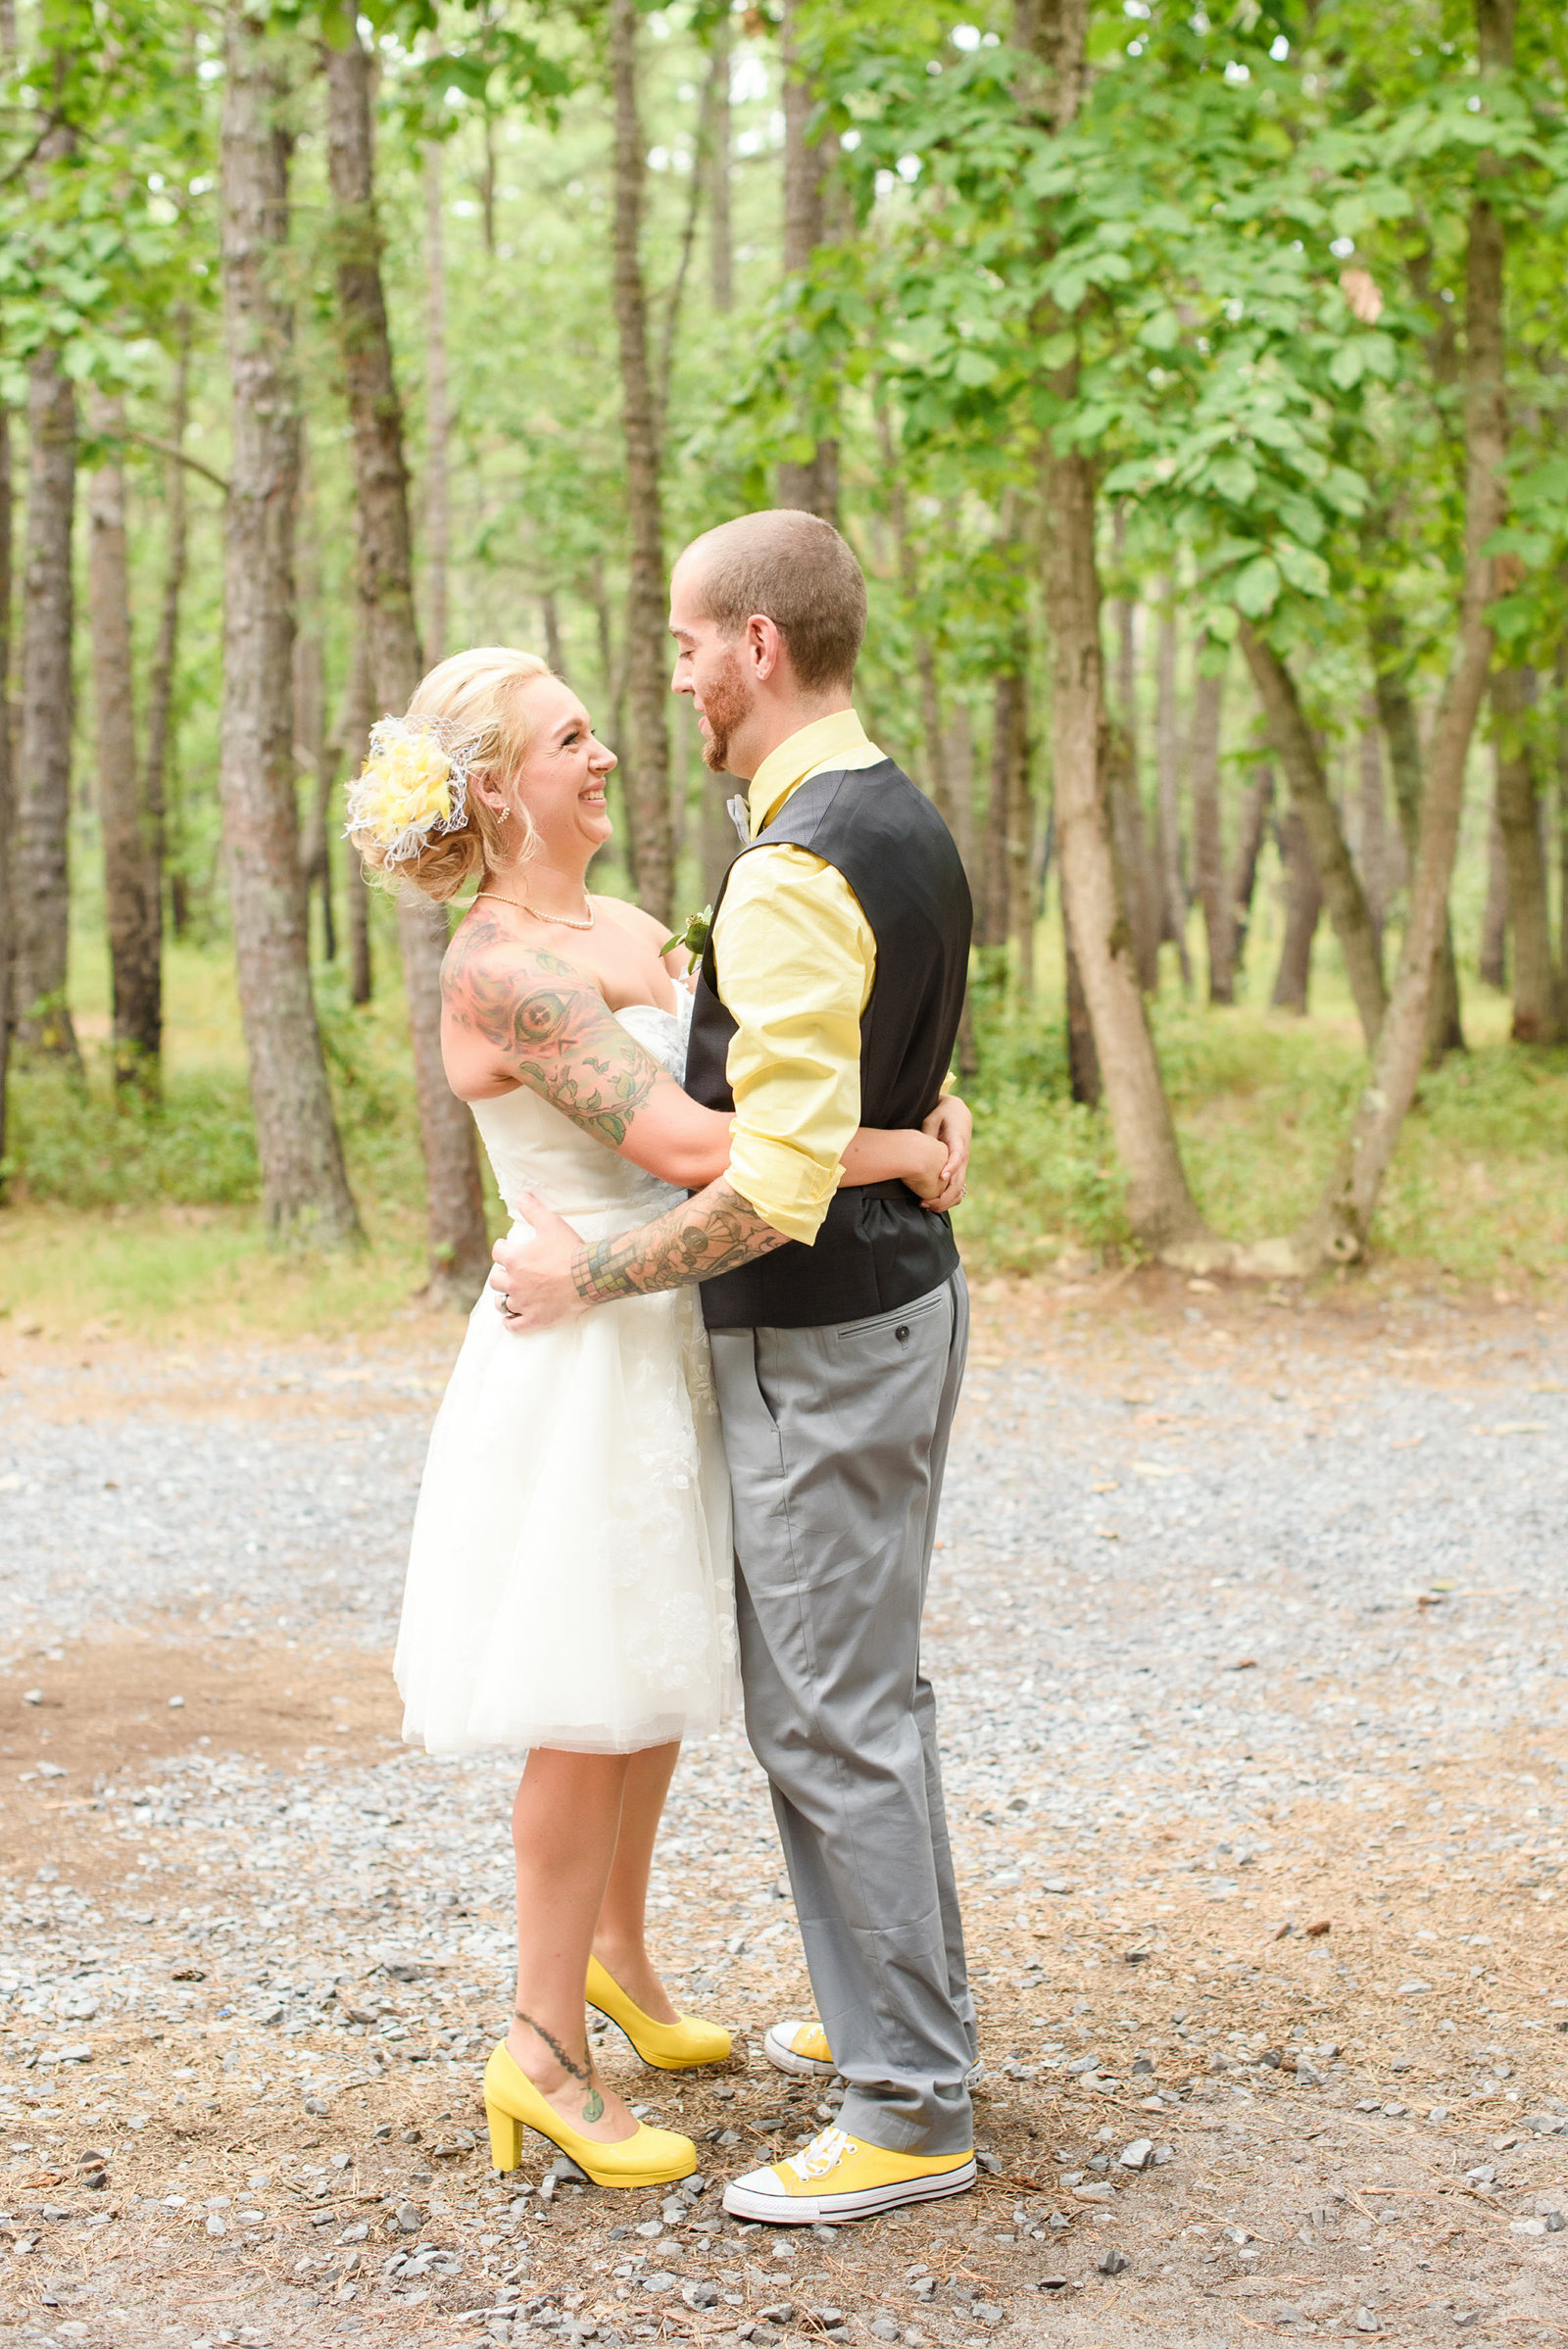 Sam&Zig_Whimsical_NJ_Wedding-139